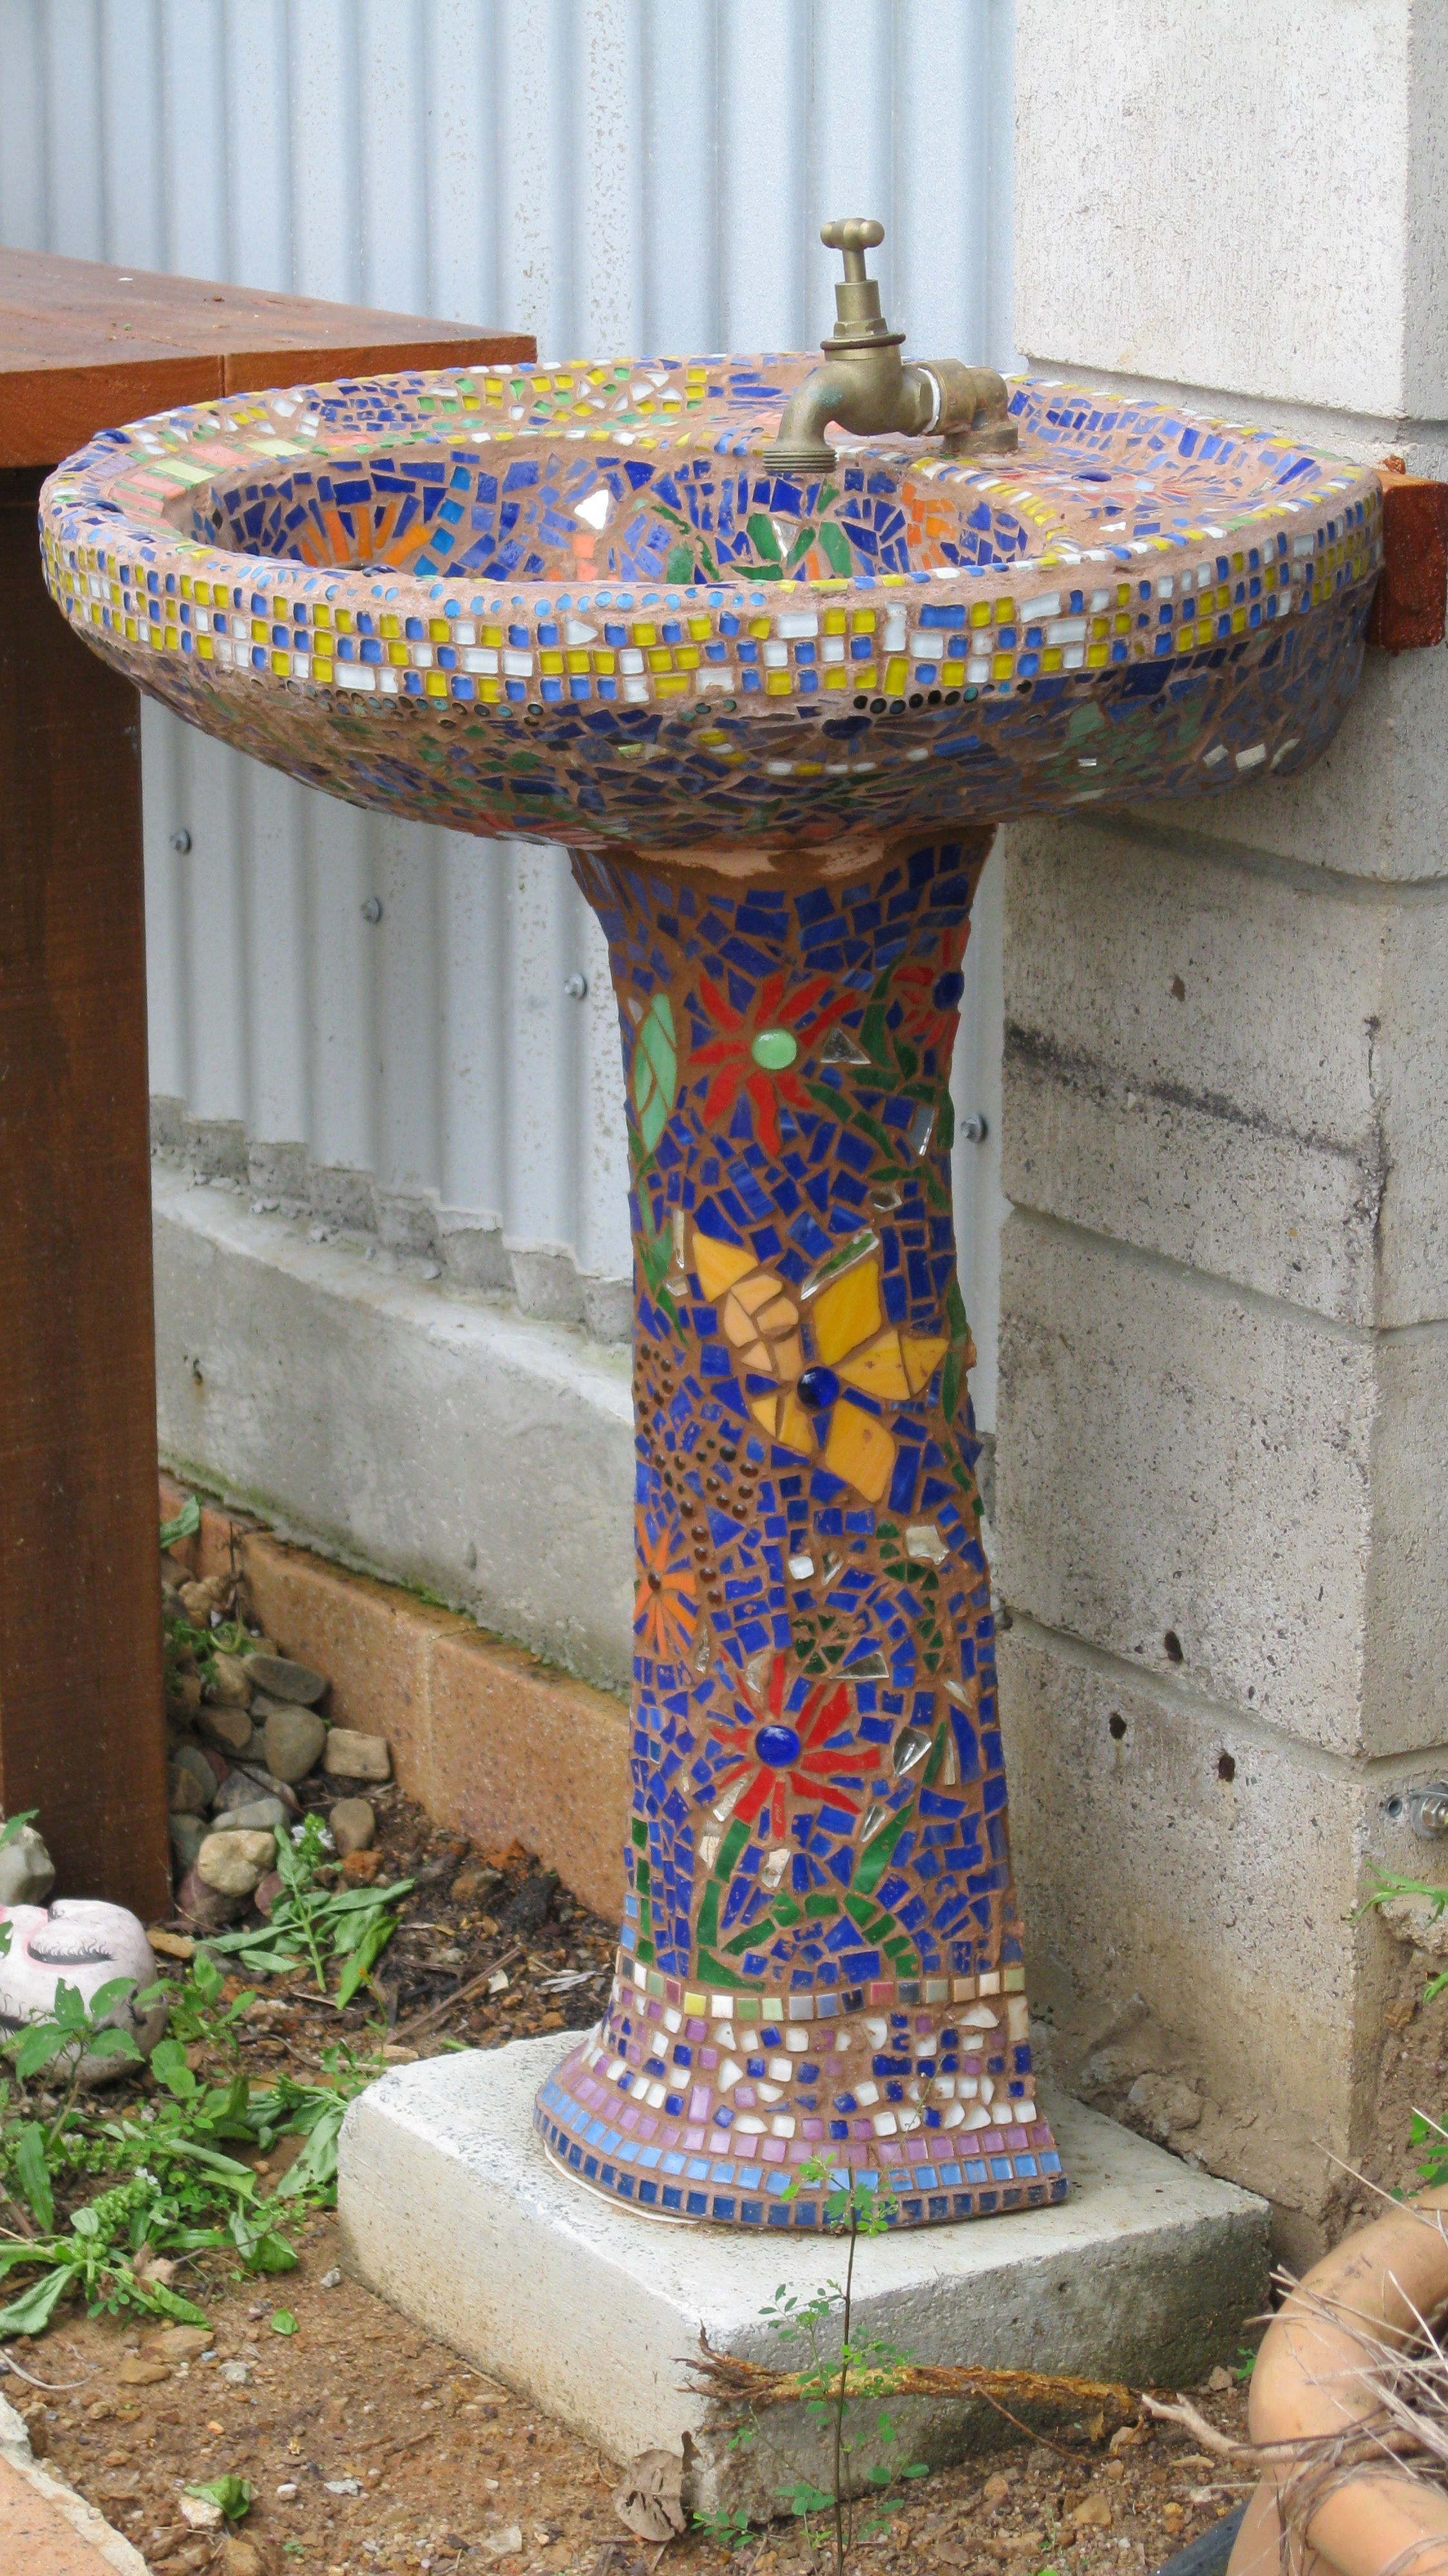 What A Great Idea For A Garden Faucet... Take A Scrapped Pedestal Sink